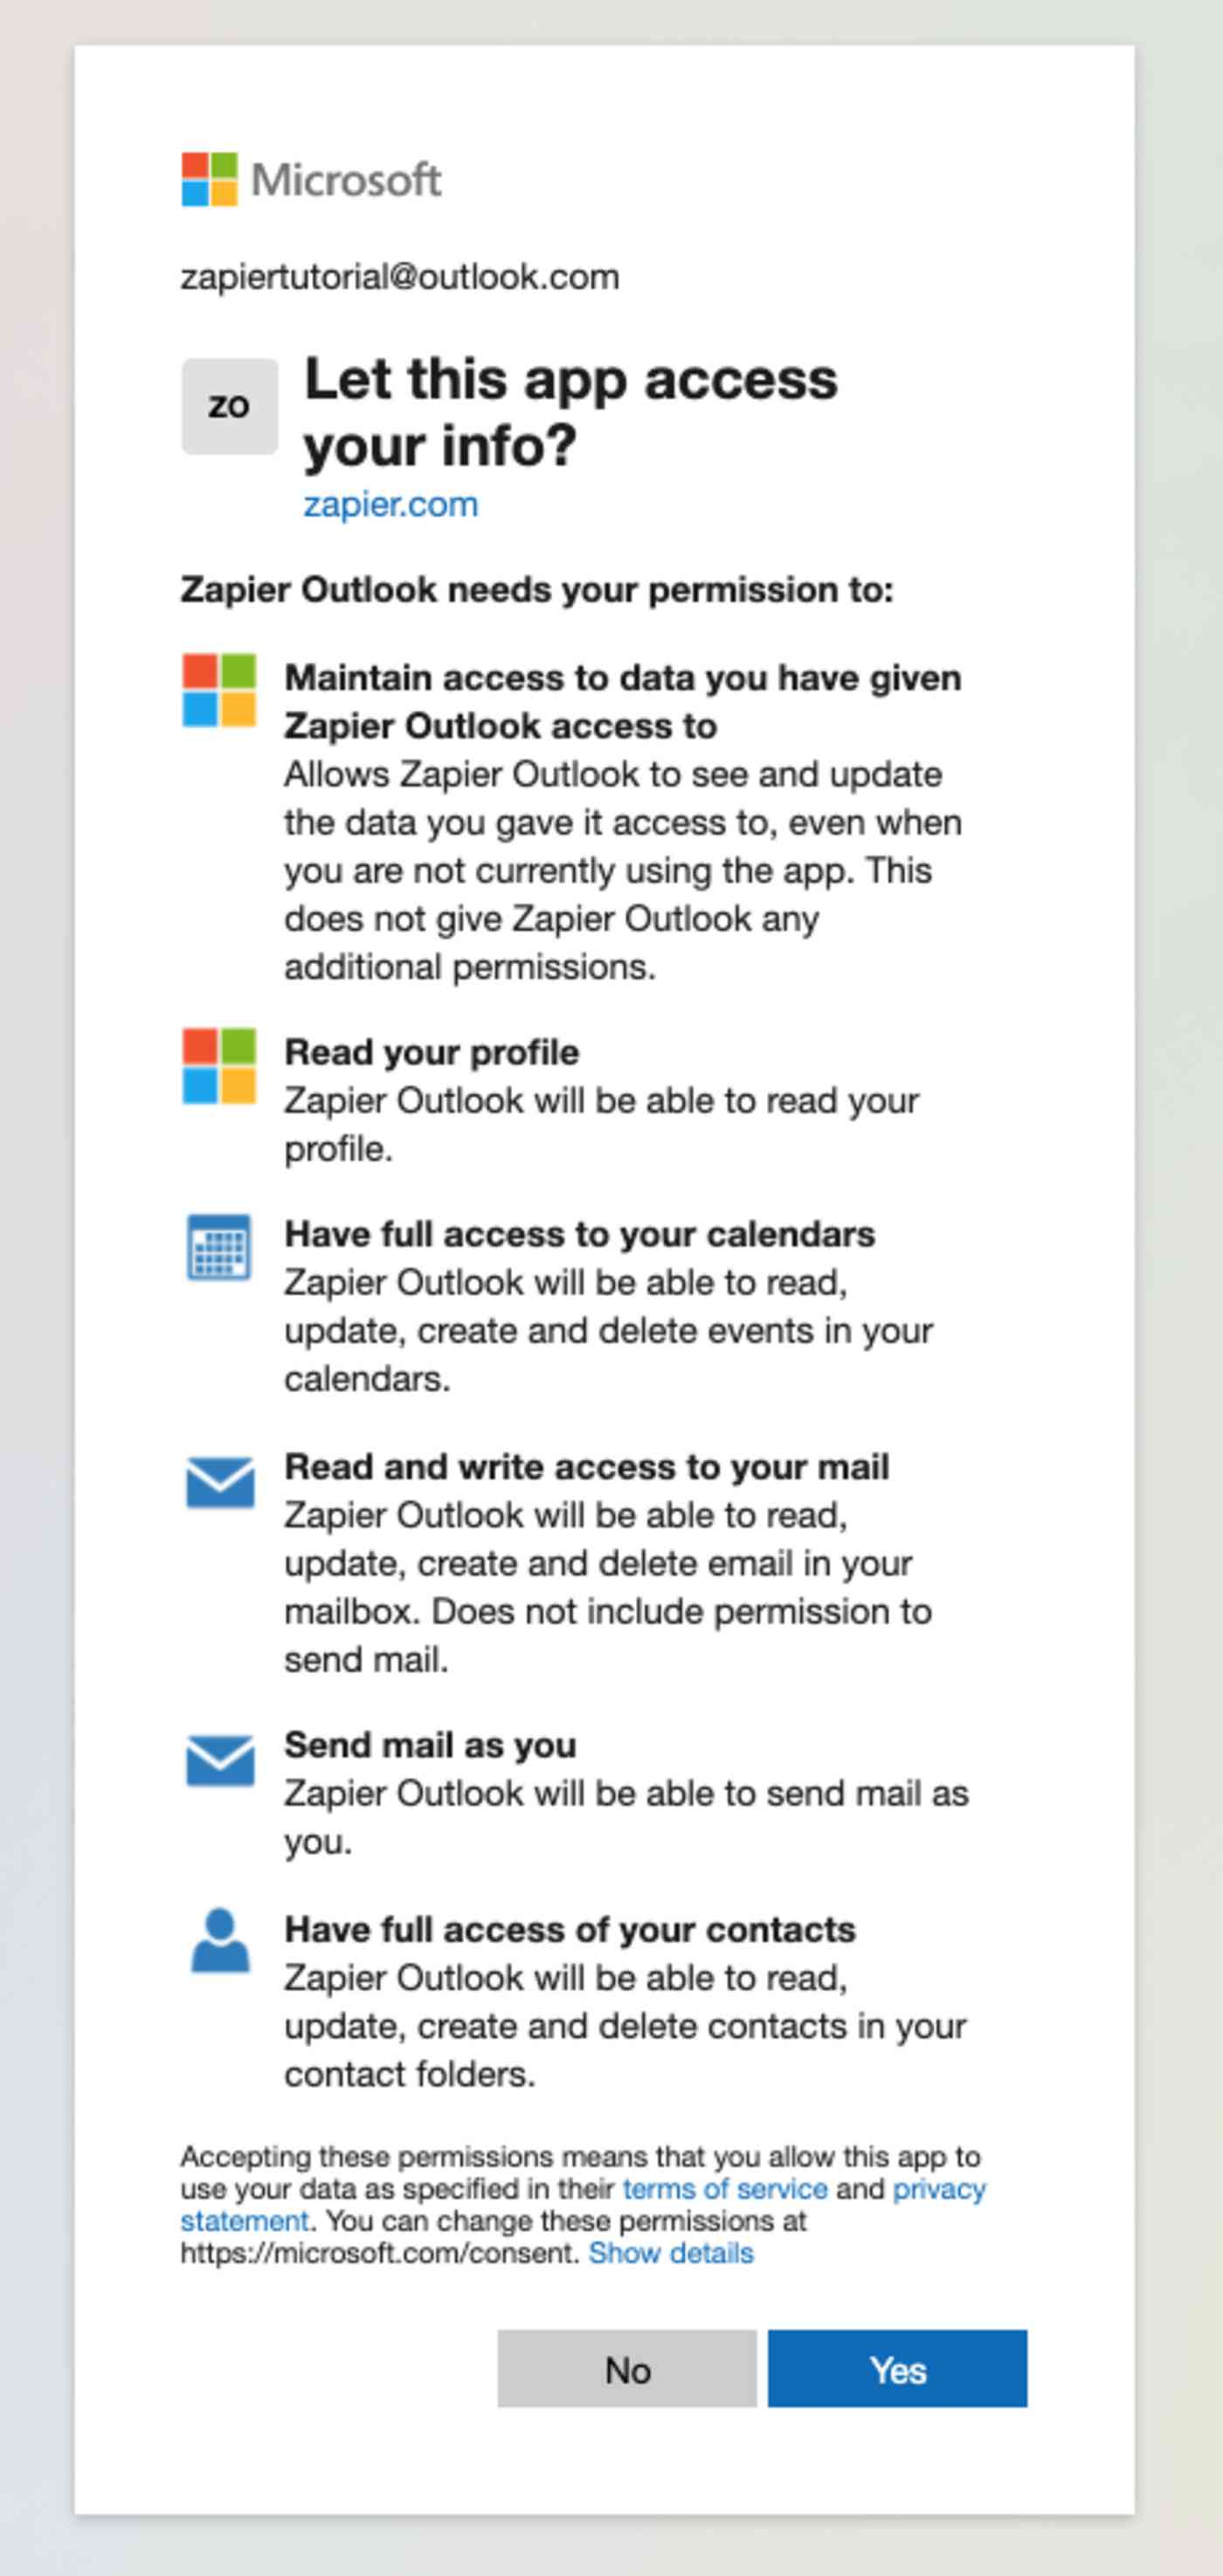 Microsoft checking to make sure you want to give Zapier access to your info.